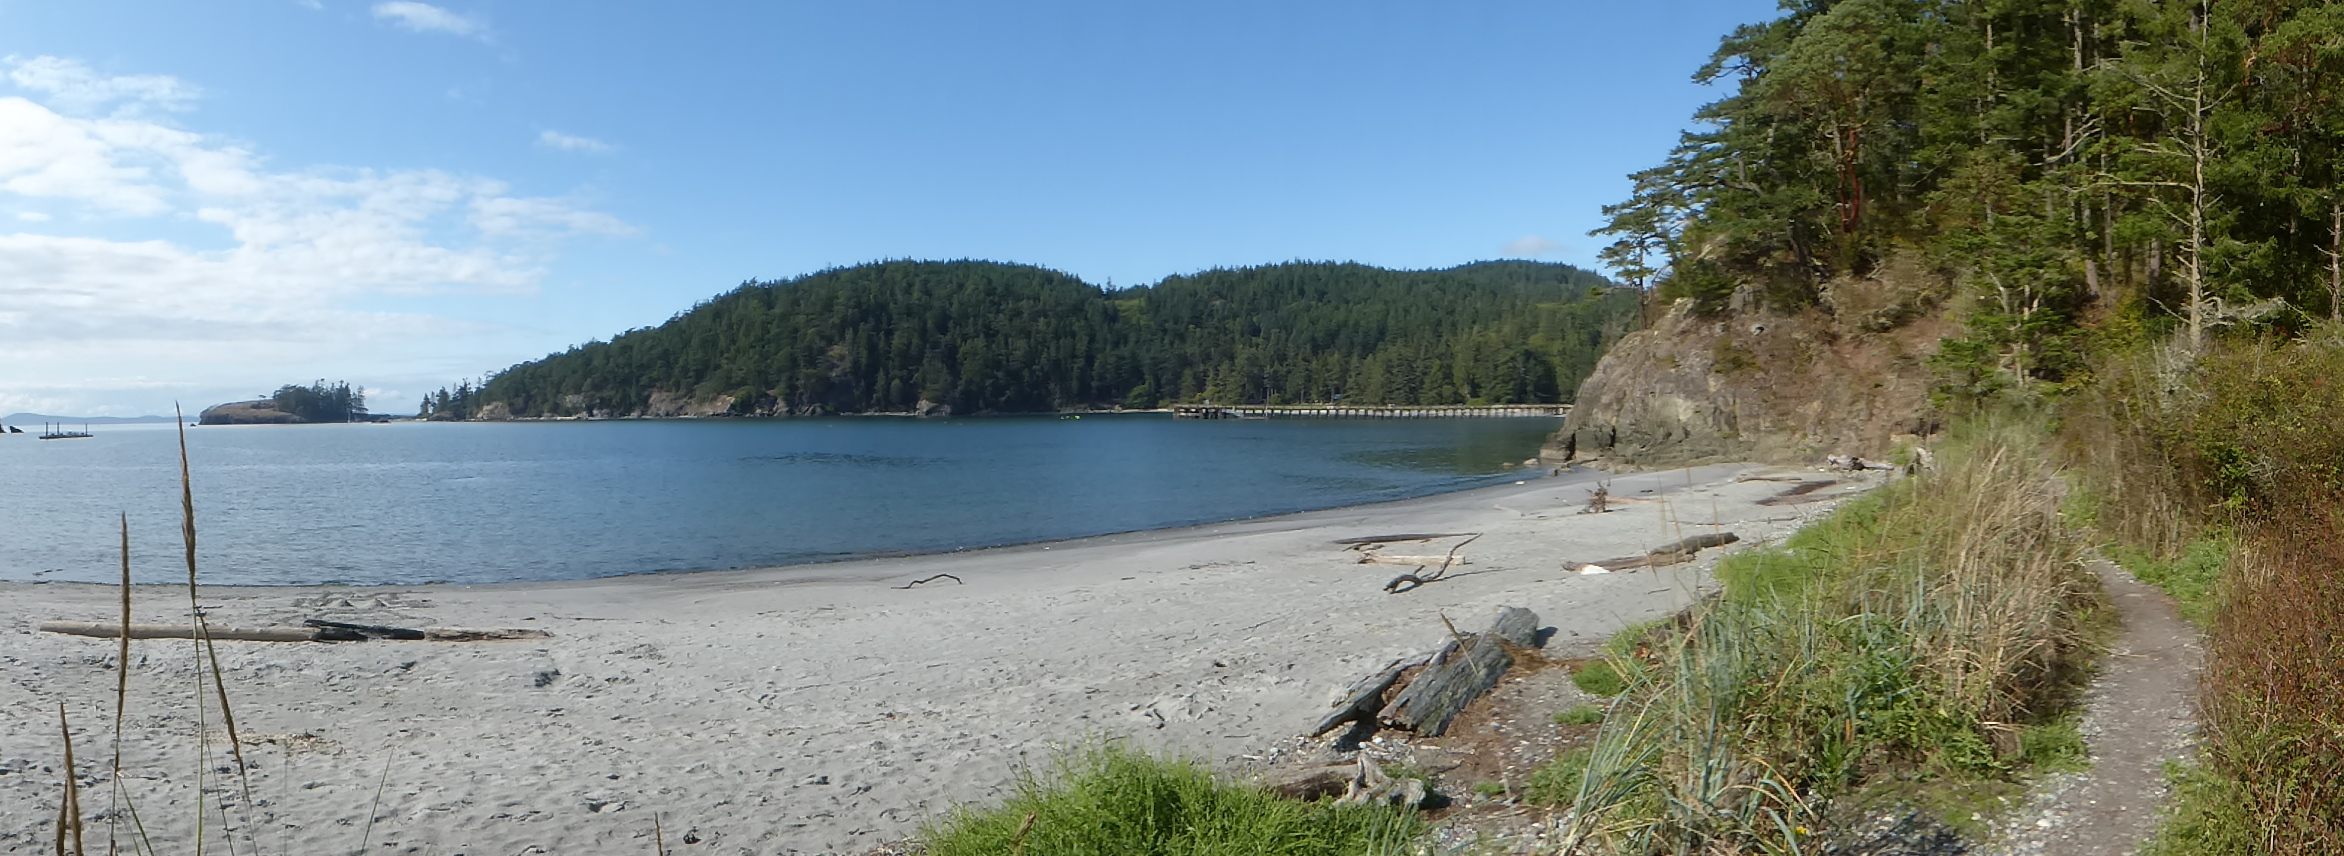 anacortes guided hikes - bowman bay deception pass state park